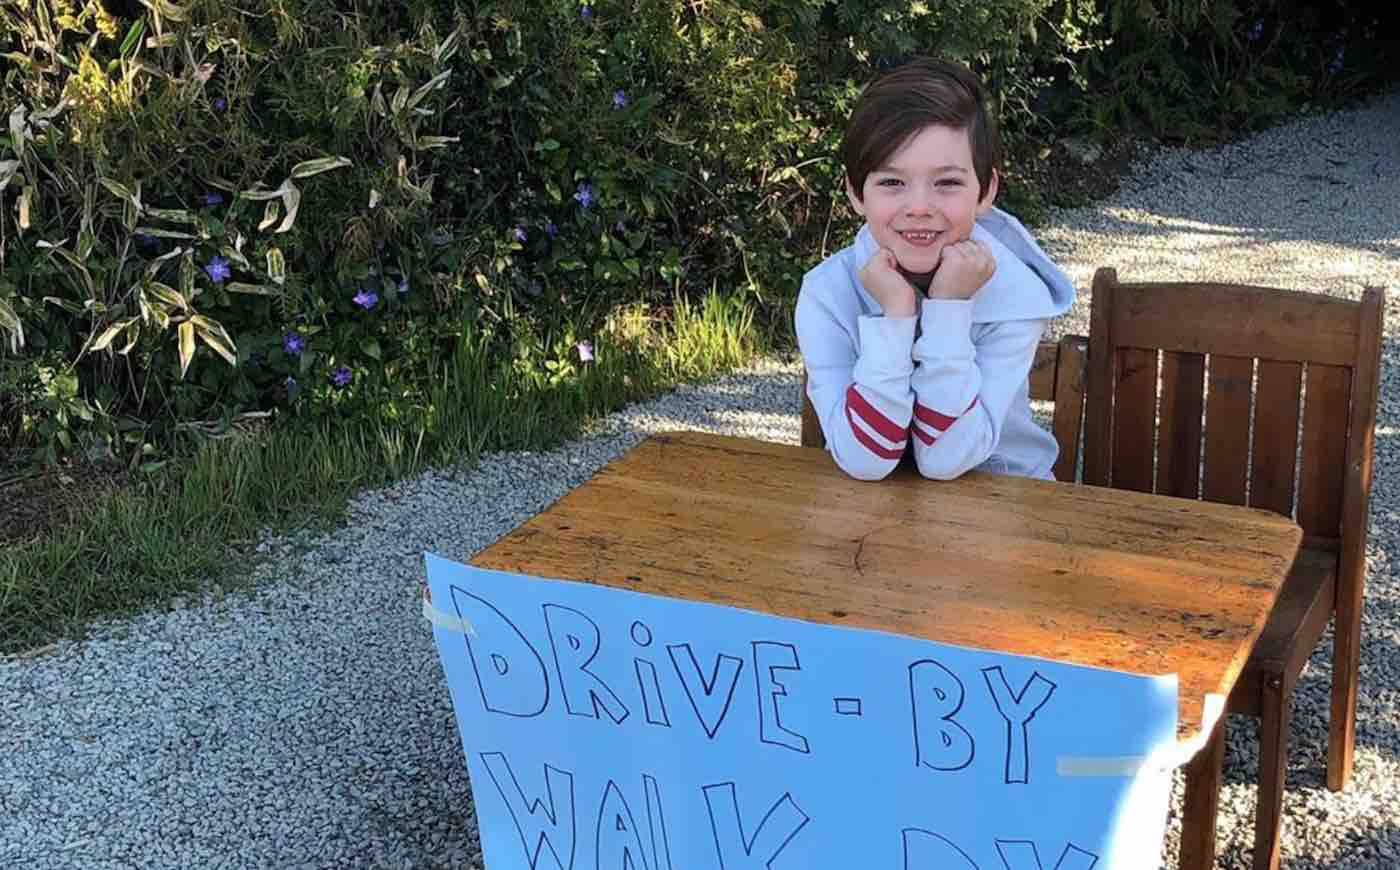 Instead of Selling Lemonade, Boy Sets Up 'Drive-By Joke Stand' to Spread Laughter During Quarantine